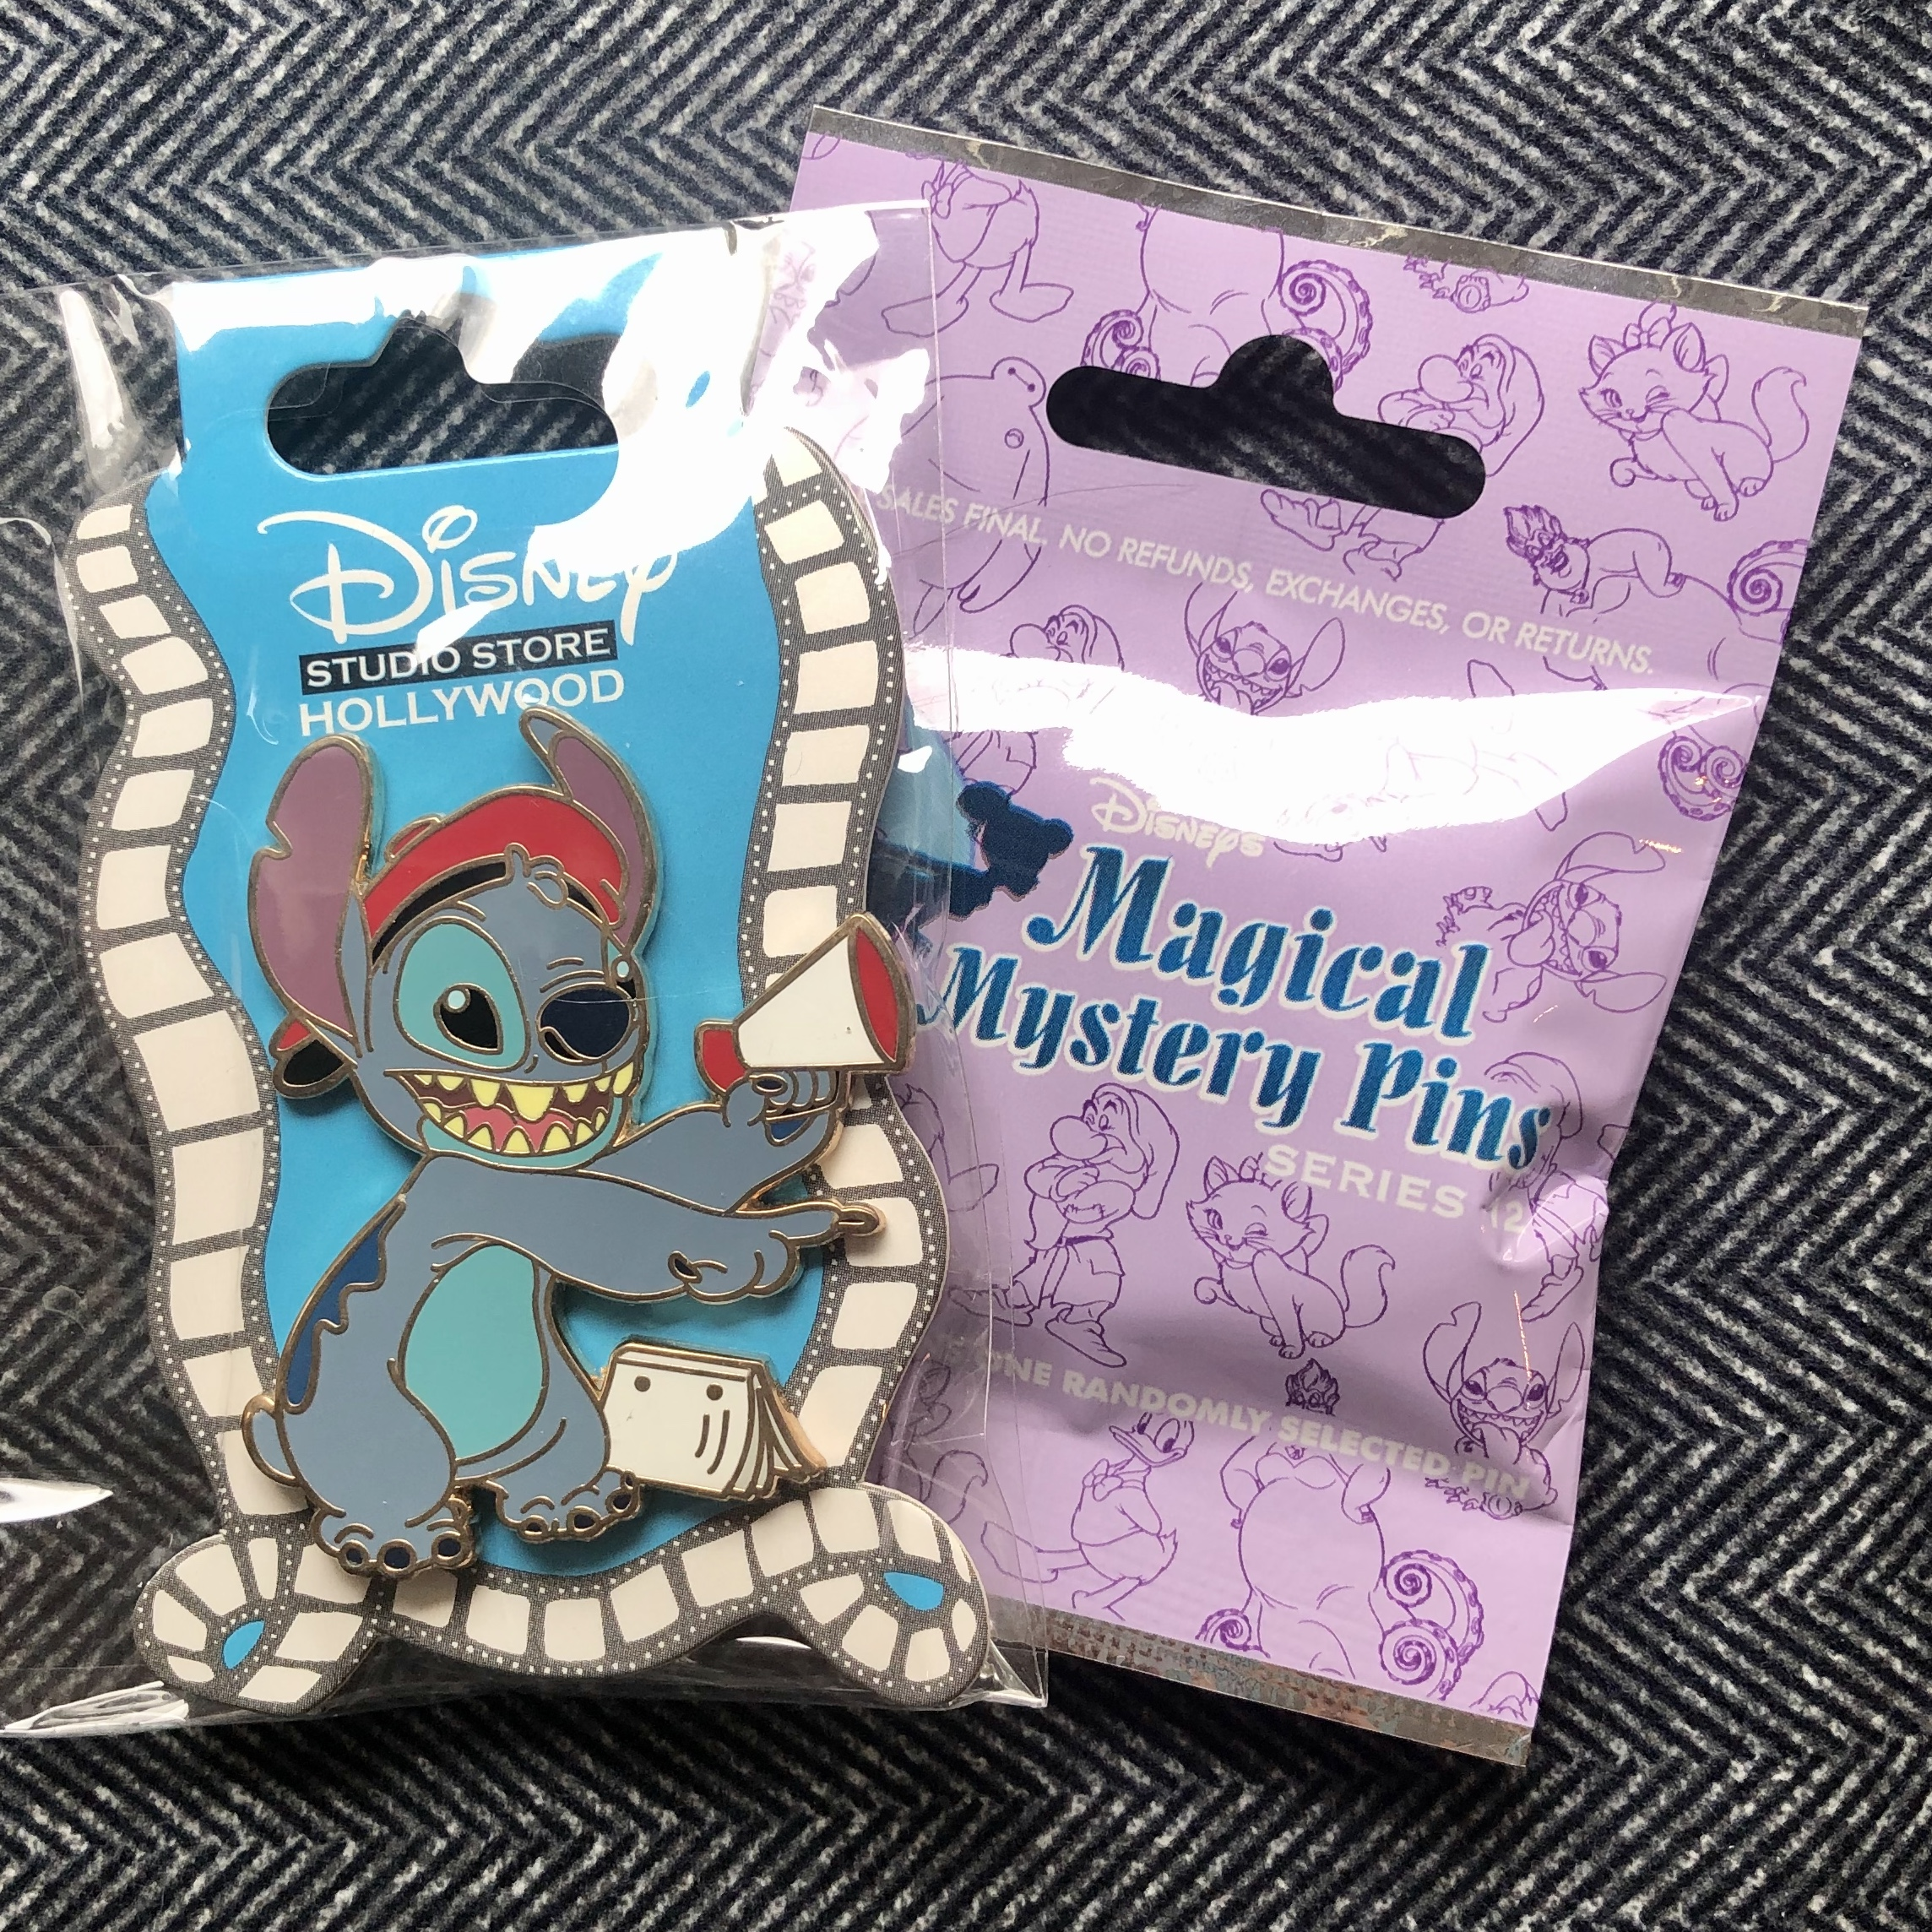 Director Stitch pin and a mystery bag